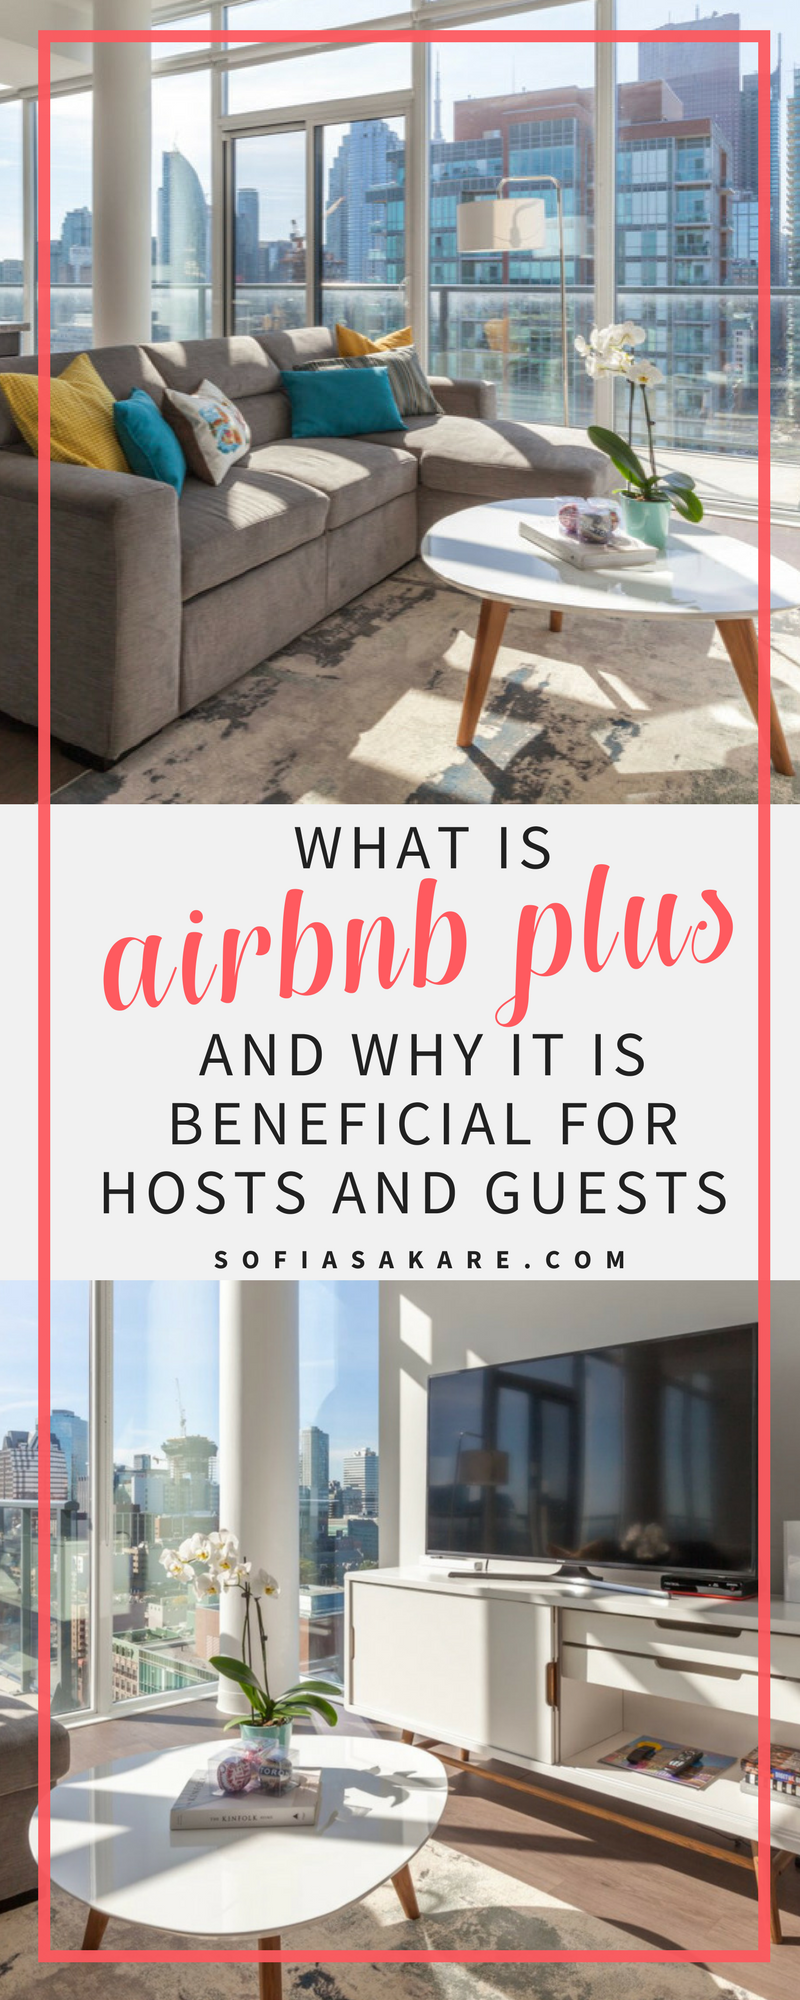 What is Airbnb Plus and why it is beneficial for both hosts and guests